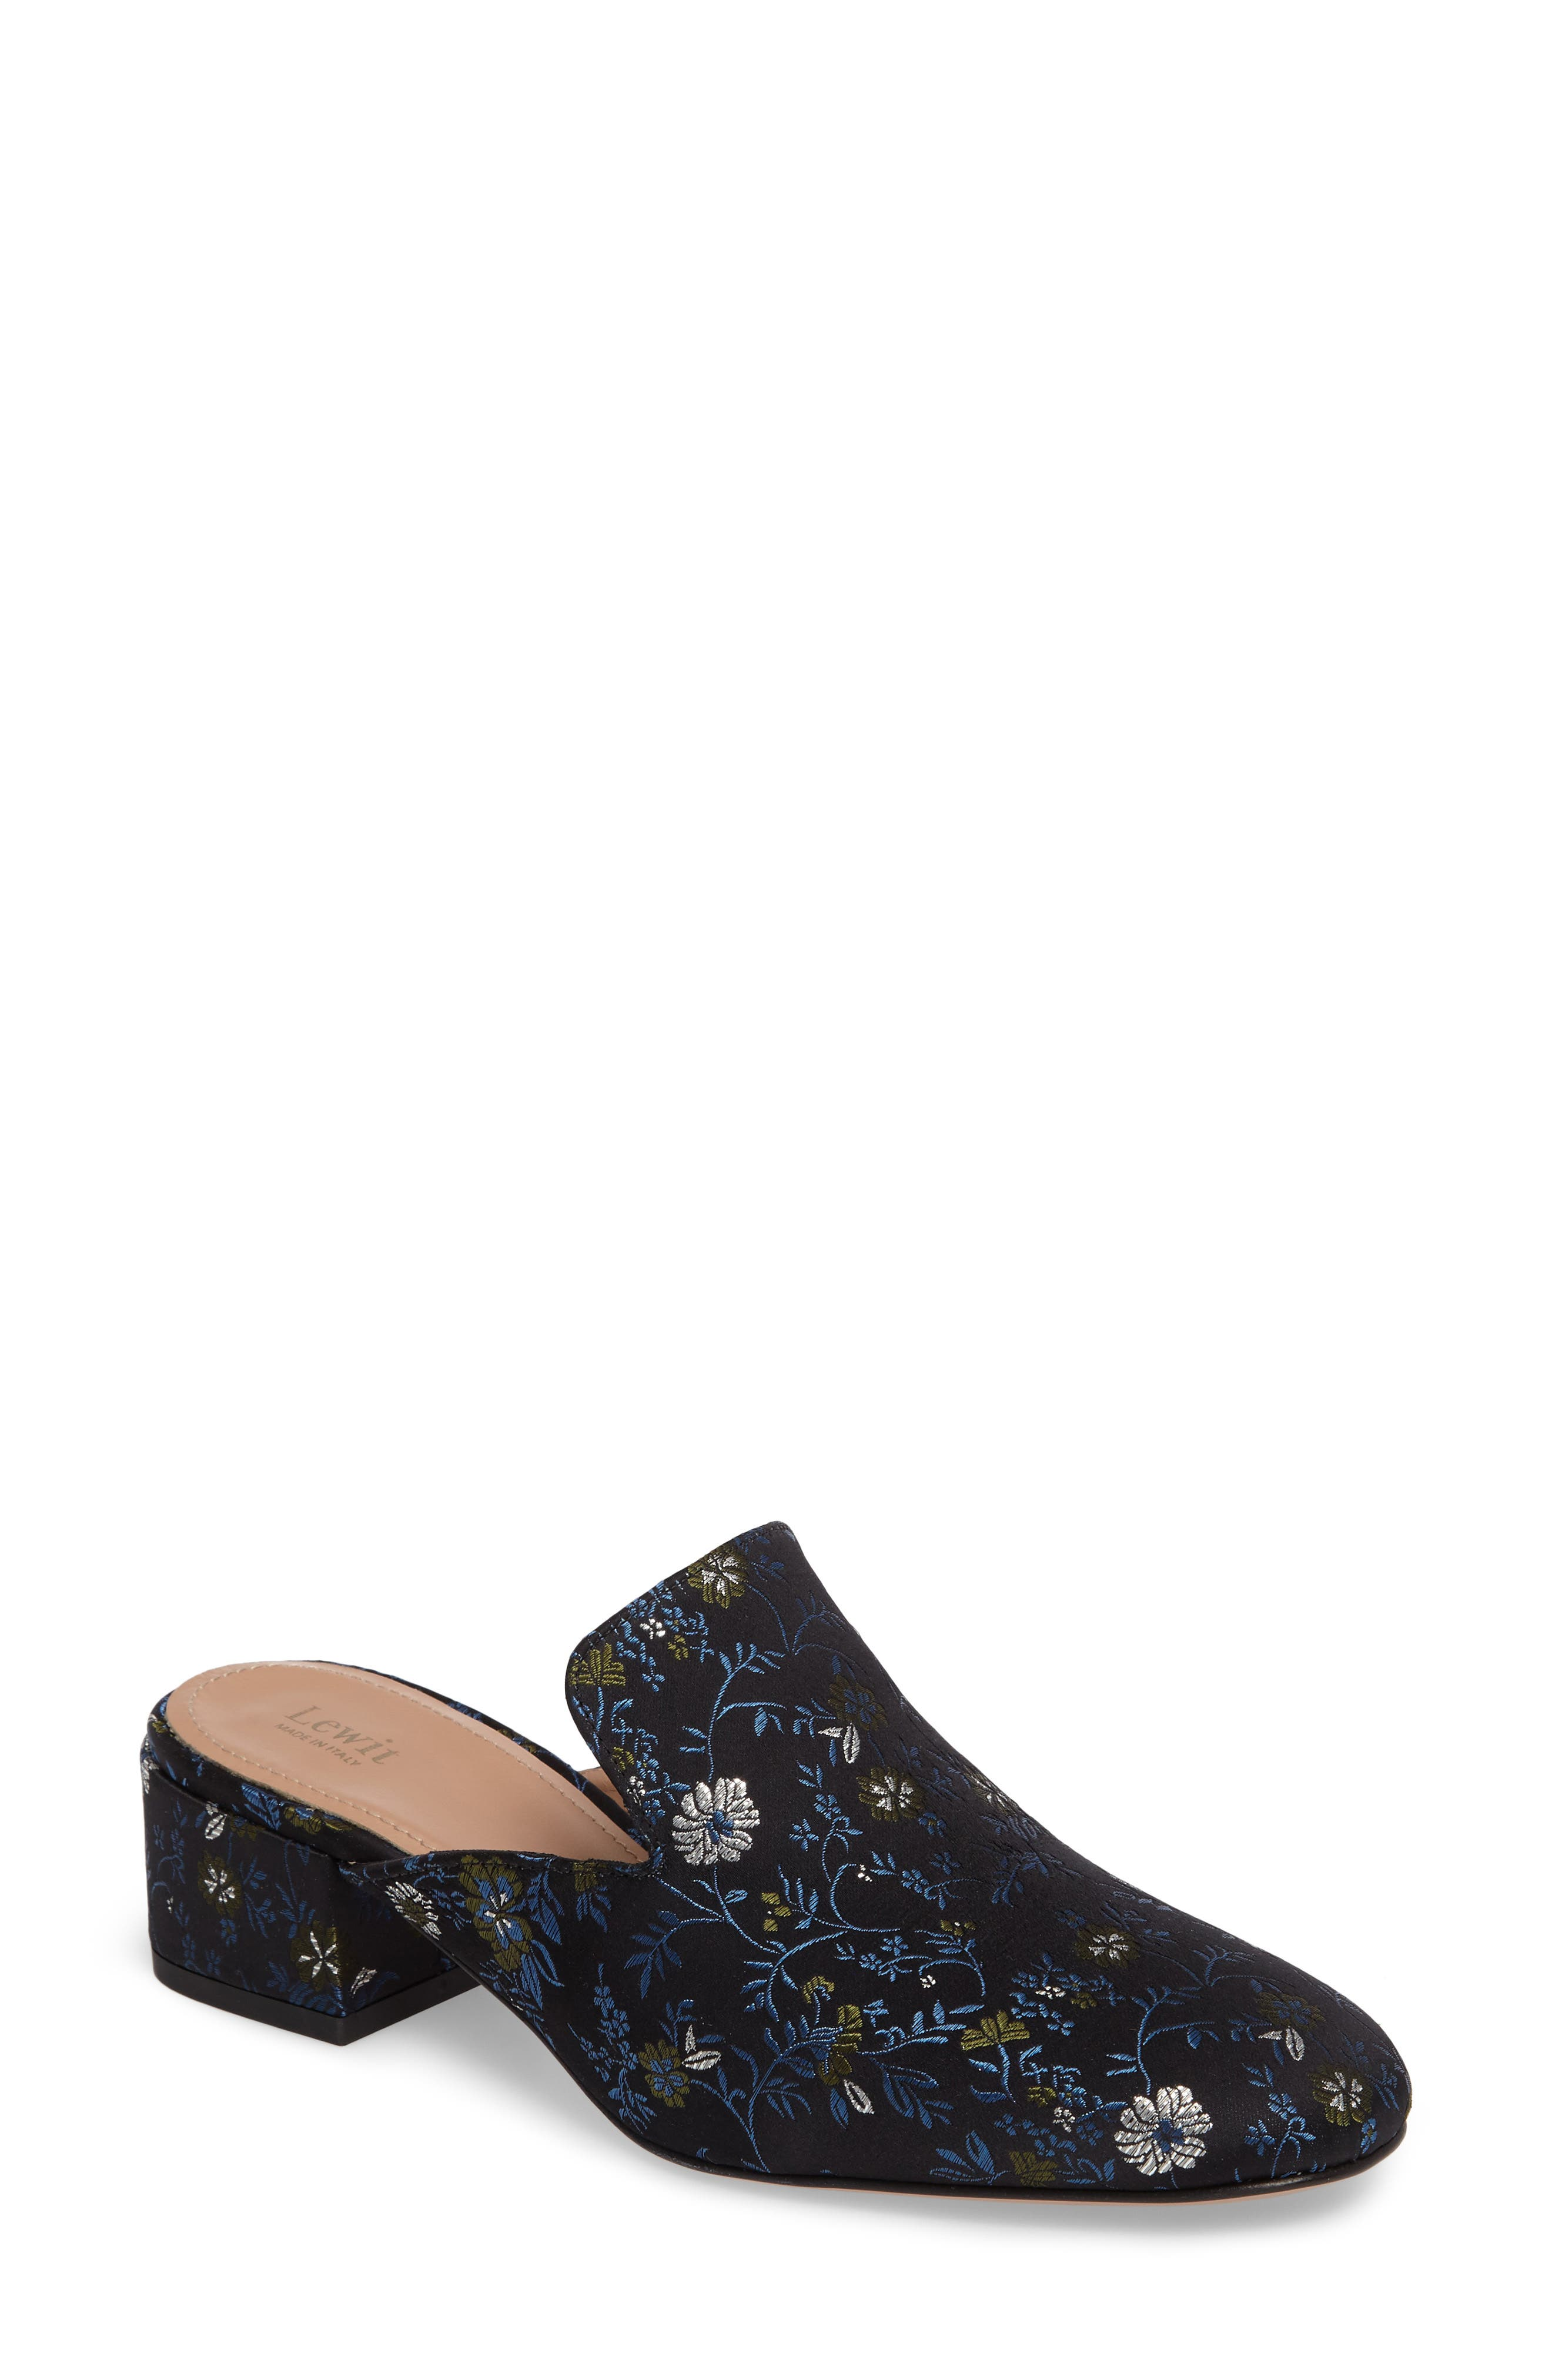 Alternate Image 1 Selected - Lewit Bianca Embroidered Loafer Mule (Women)